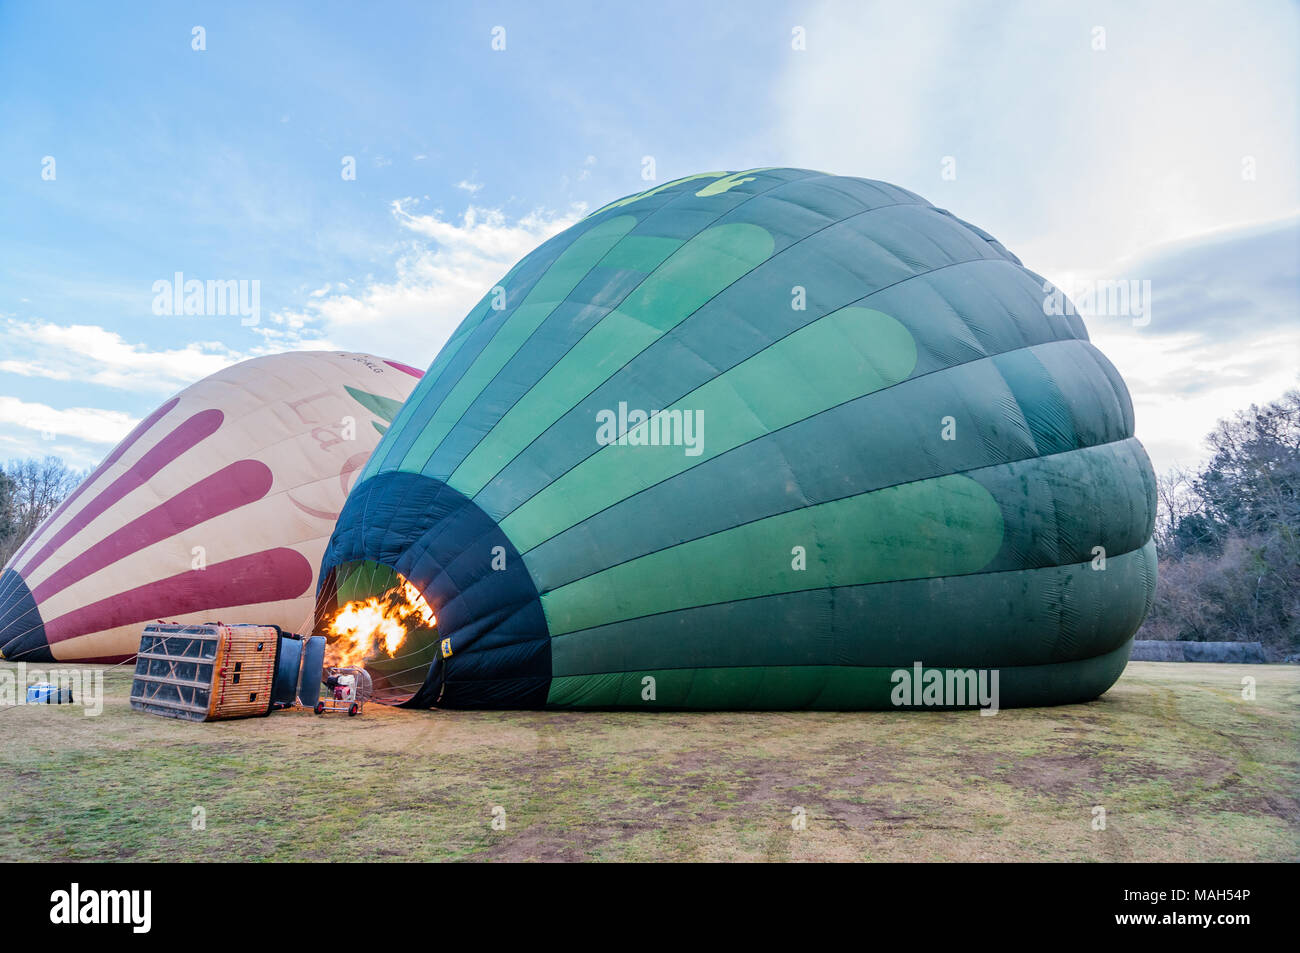 blowing hot air in a hot air balloon, inflating, wicker basket, Catalonia, Spain - Stock Image